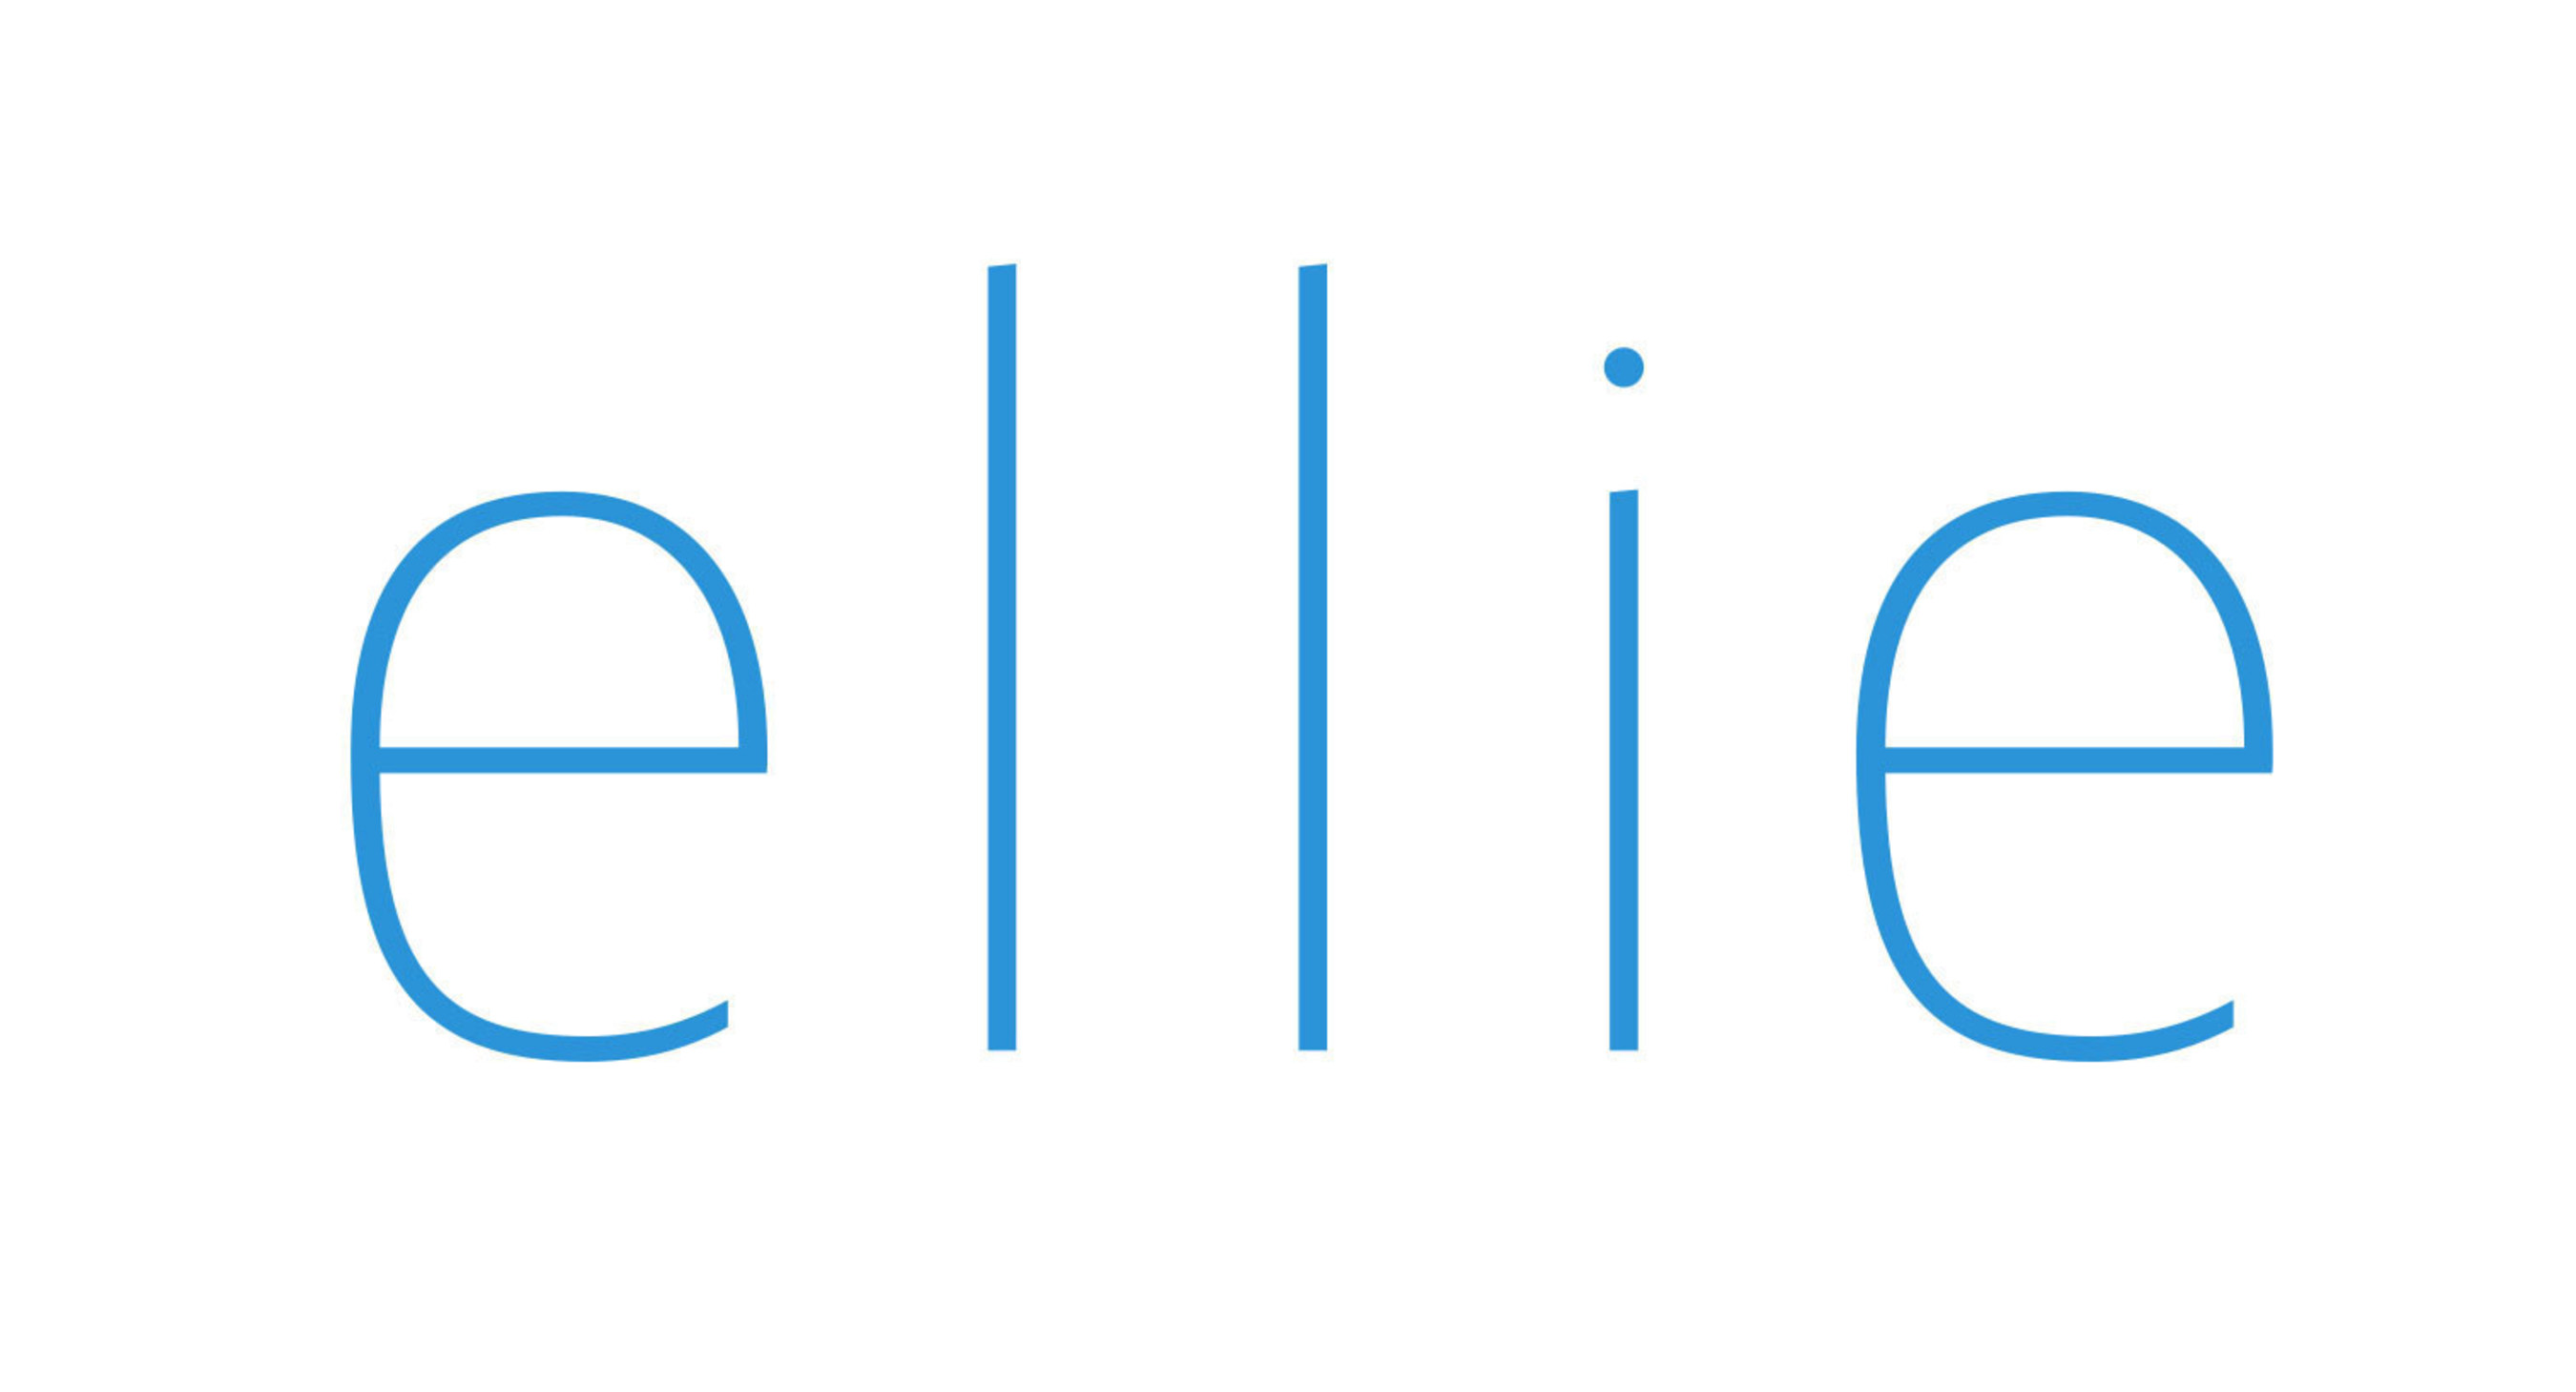 Ellie is the first ever portable digital UV LED technology used to sterilize bottles, pacifiers, water and more in just 60 seconds.